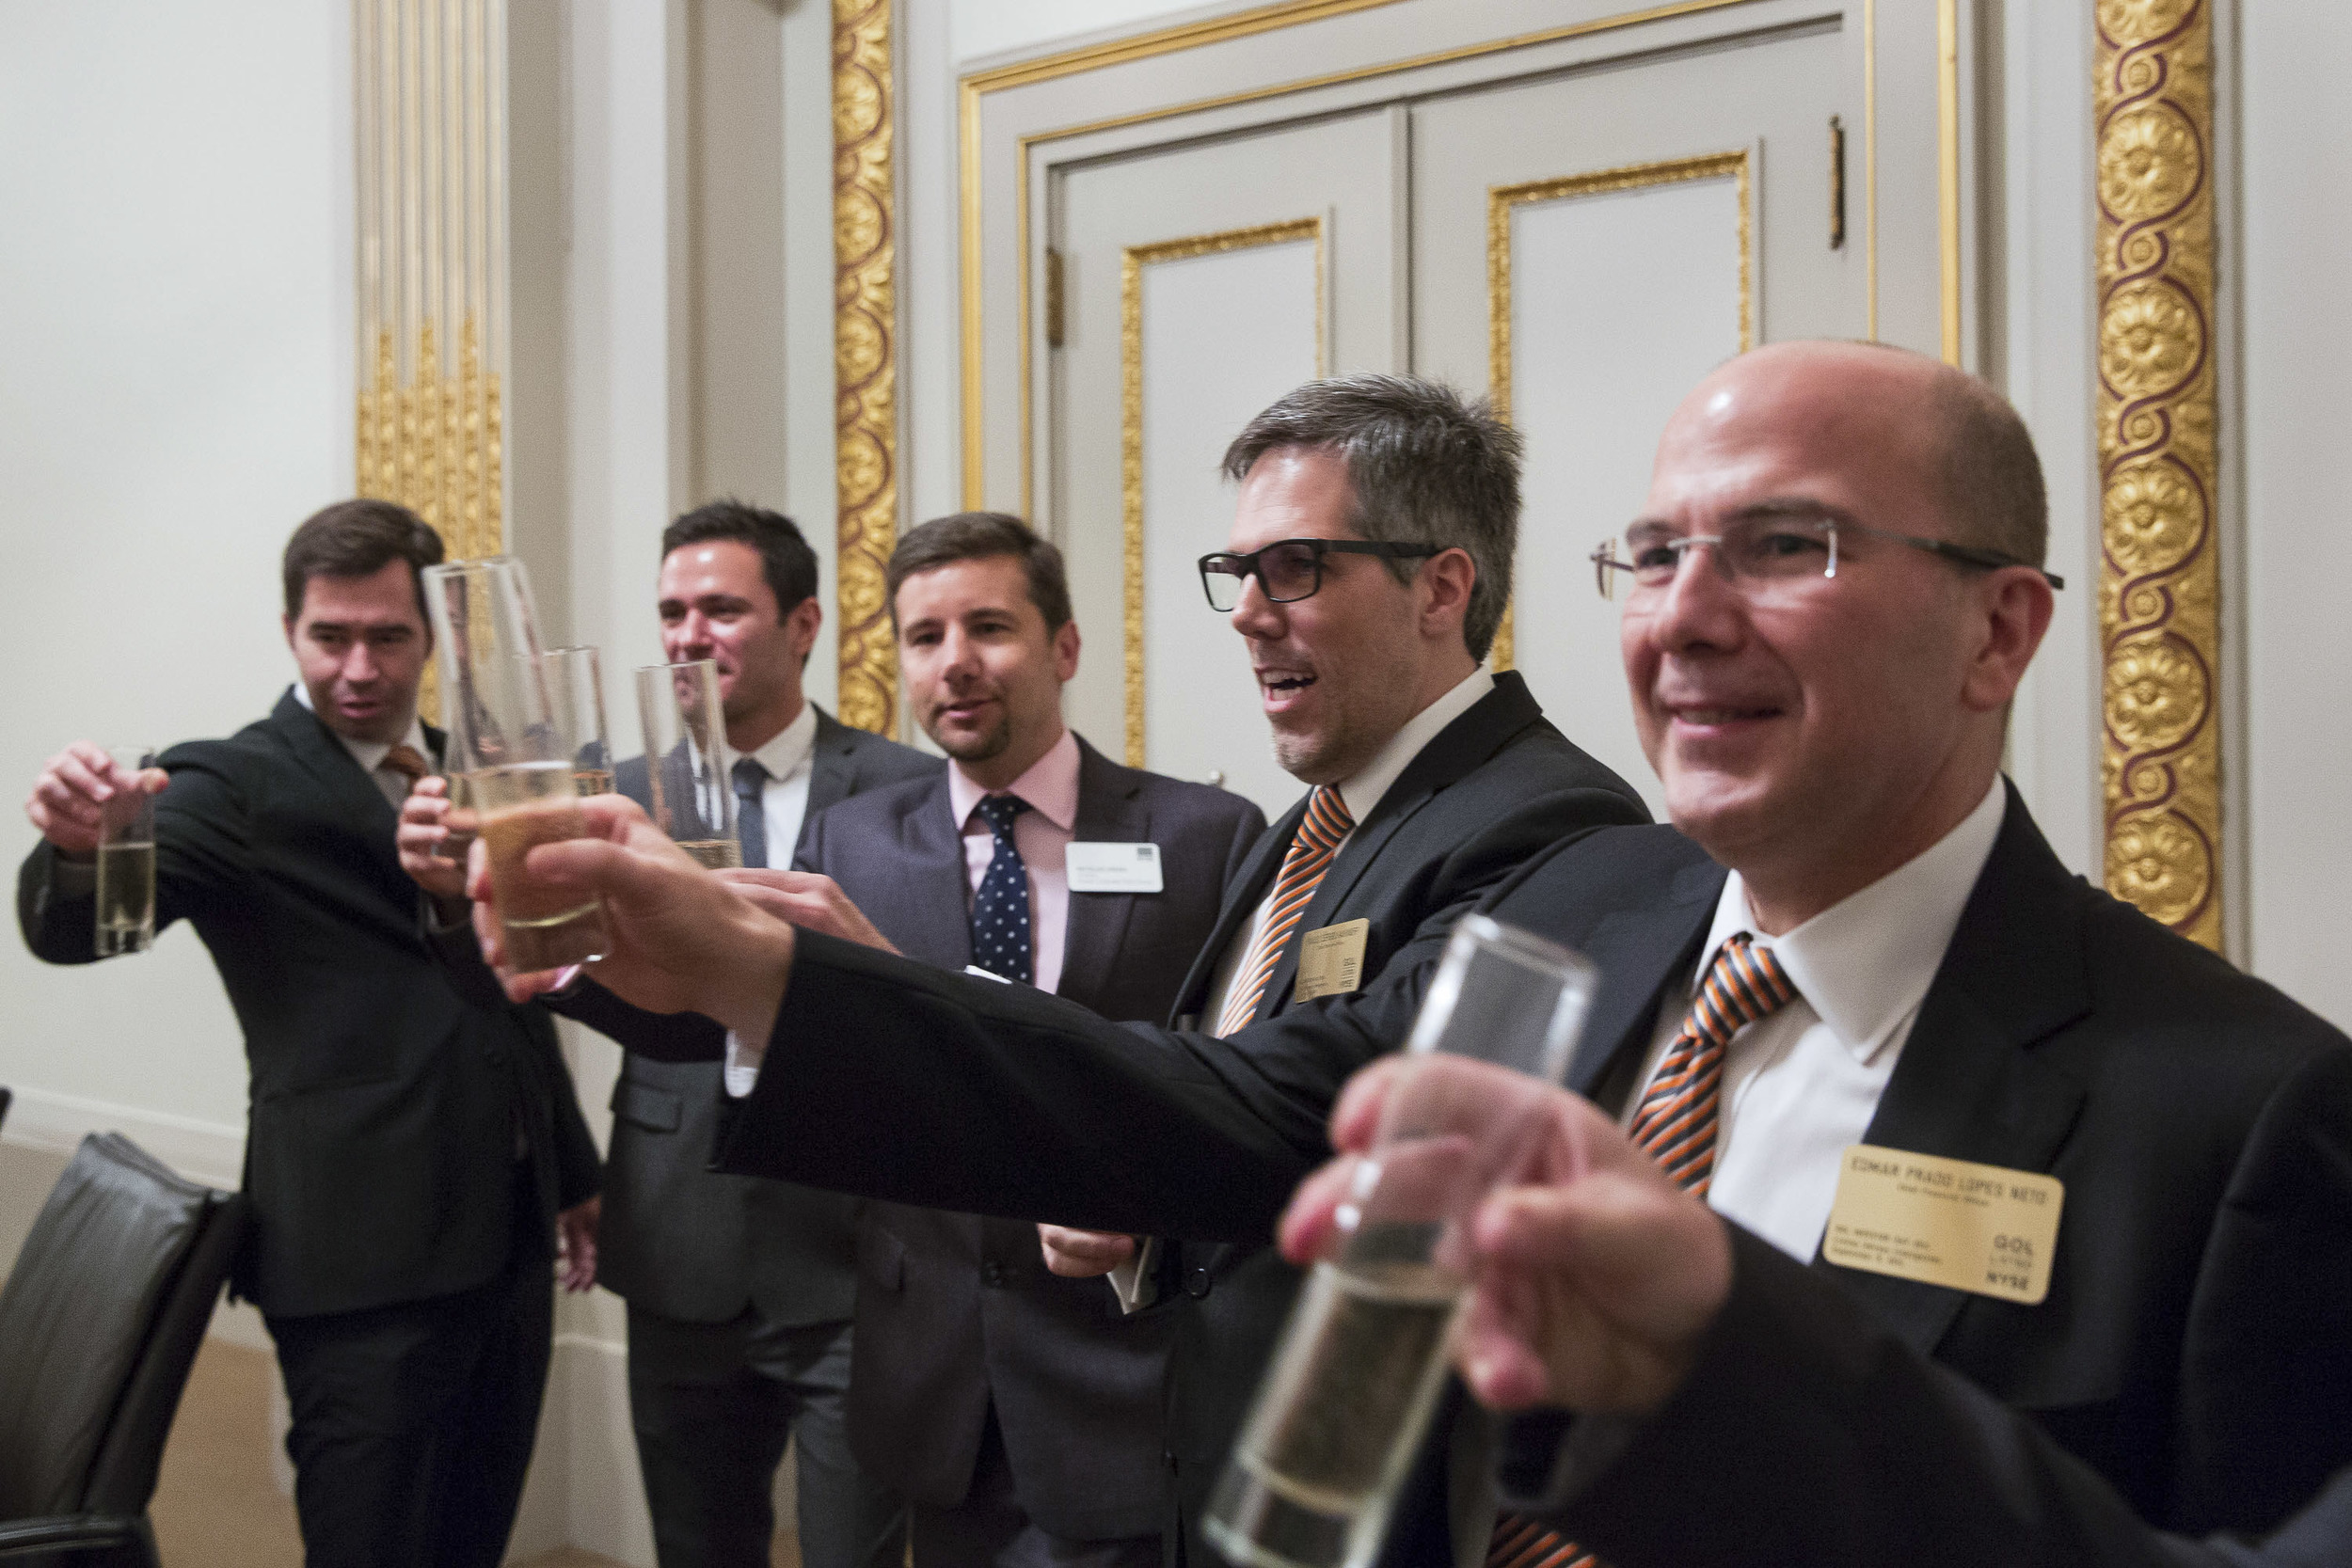 Early morning champagne to celebrate an IPO.